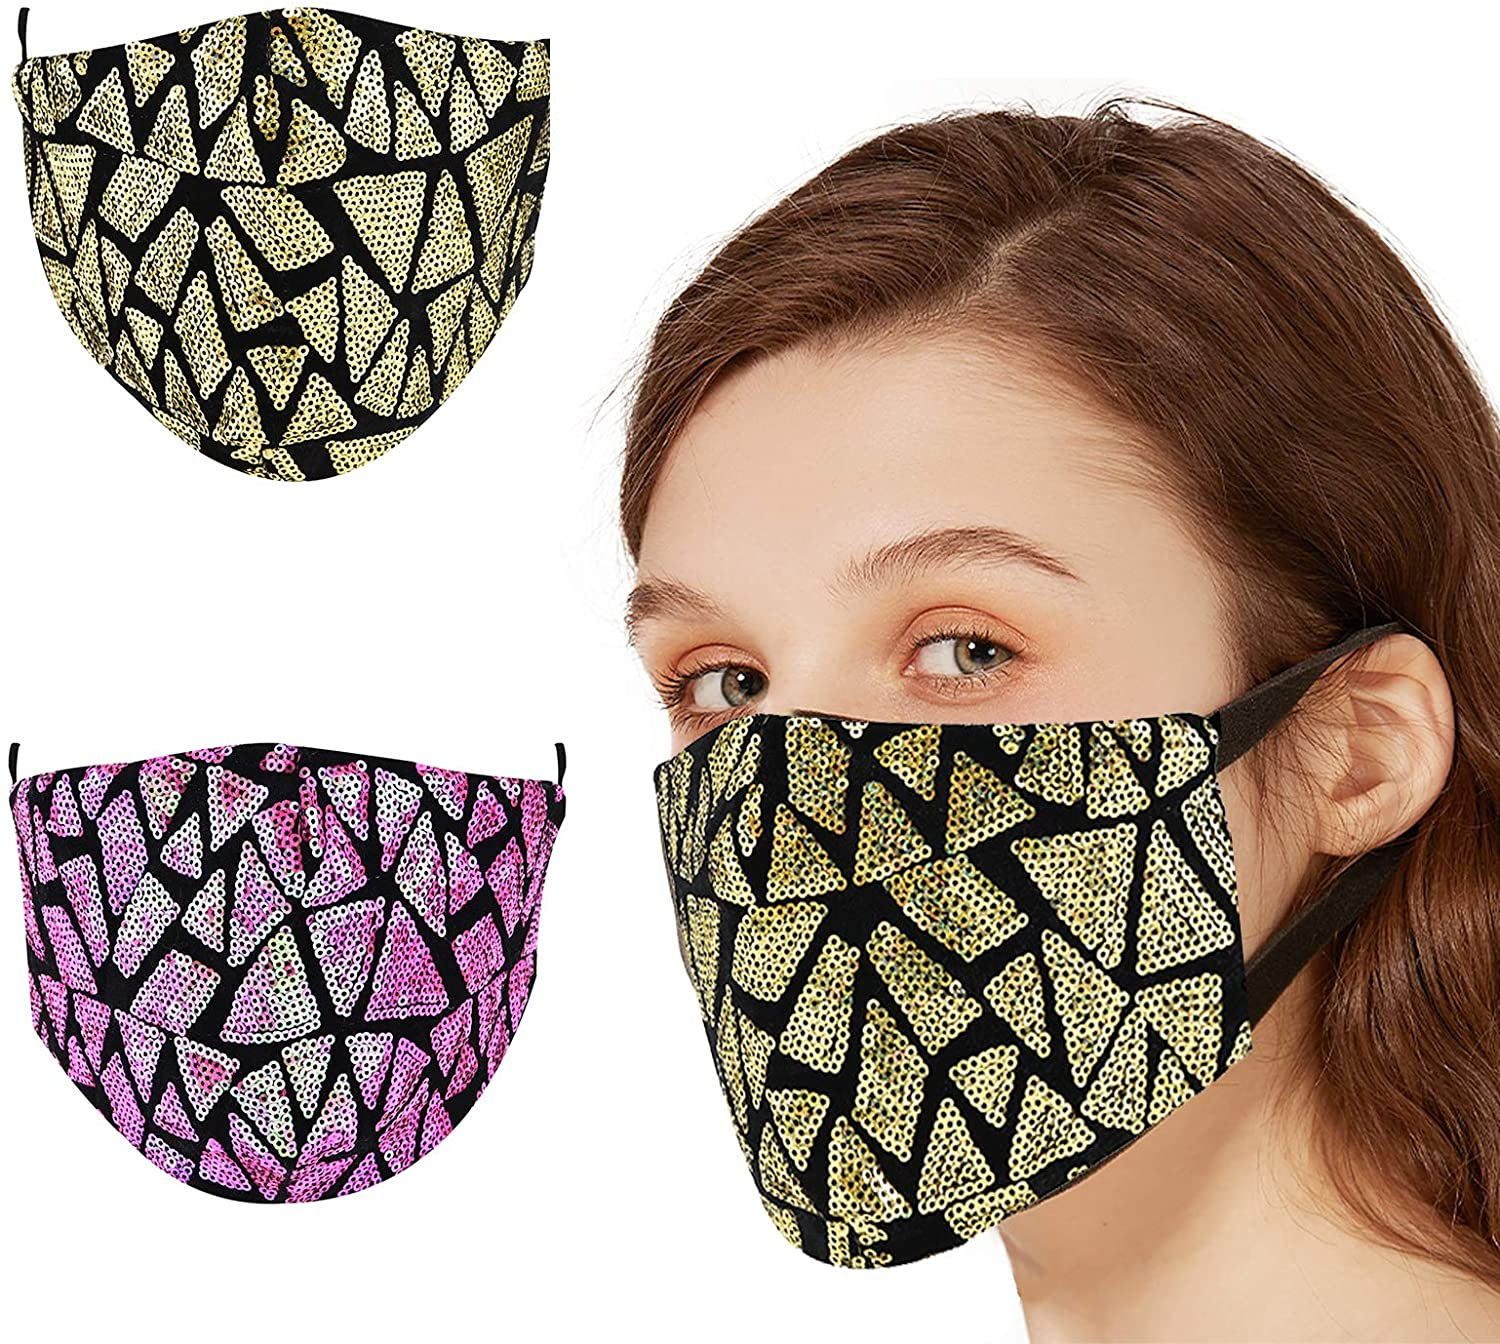 BAIJIE 2PCS Face Cloth Bling Mask with Adjustable Ear Loops Reusability for Men Women